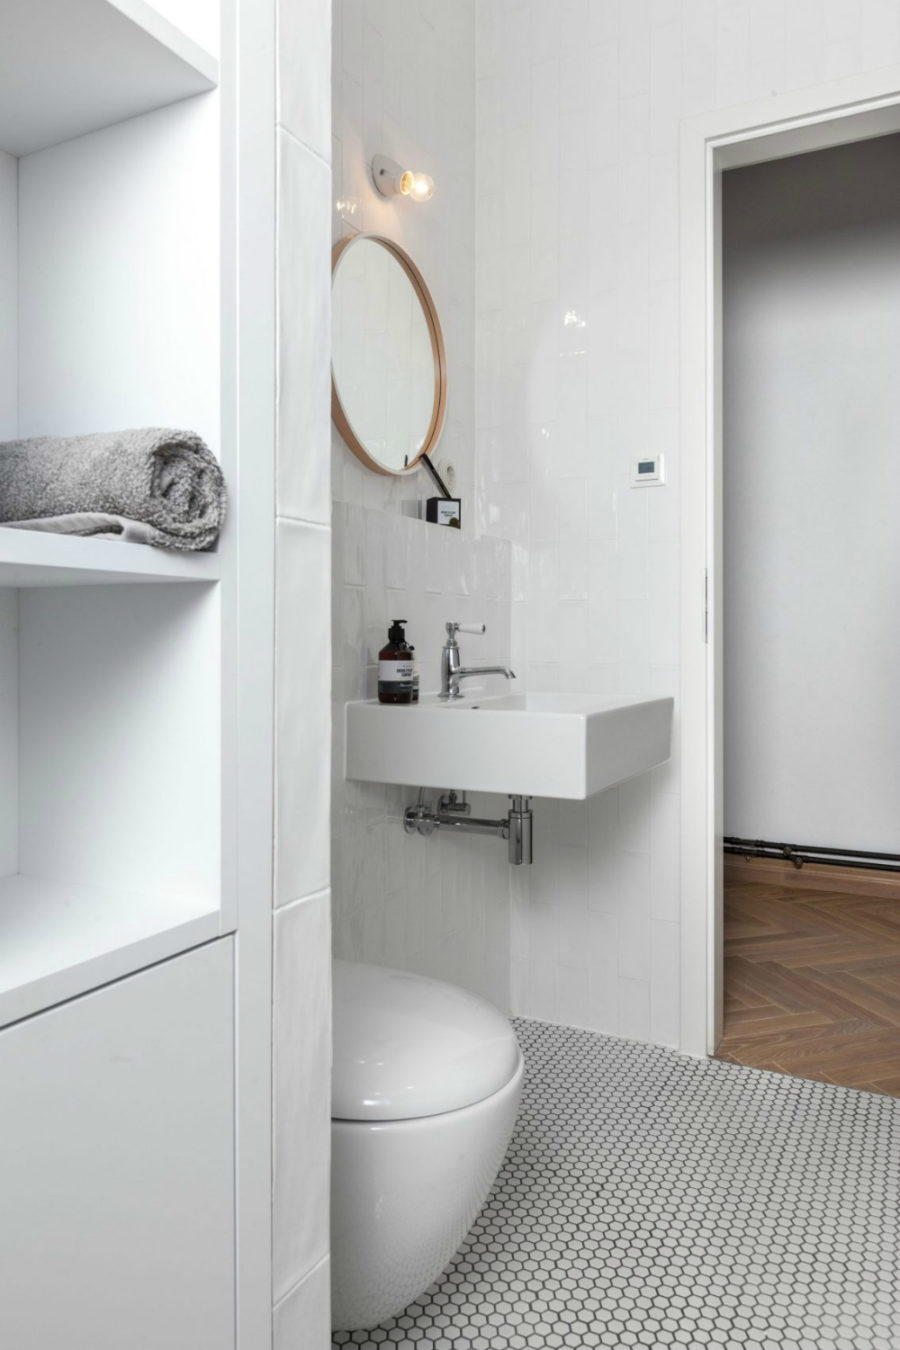 Built-in storage keeps the pristine bathroom neat